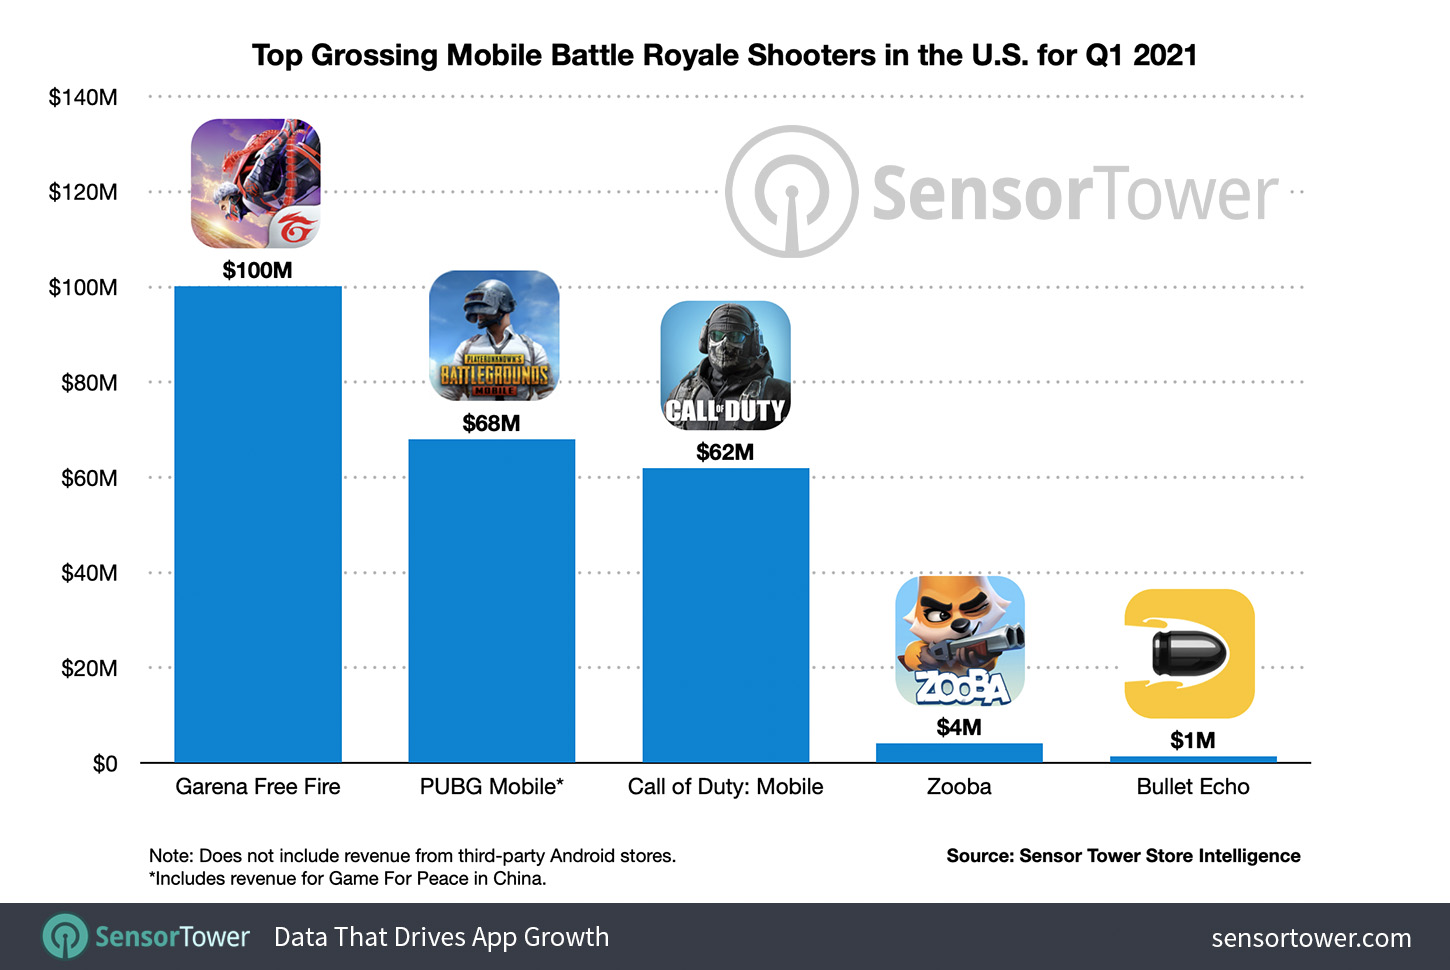 Top Shooters Mobile Battle Royale in the United States in Q1 2021